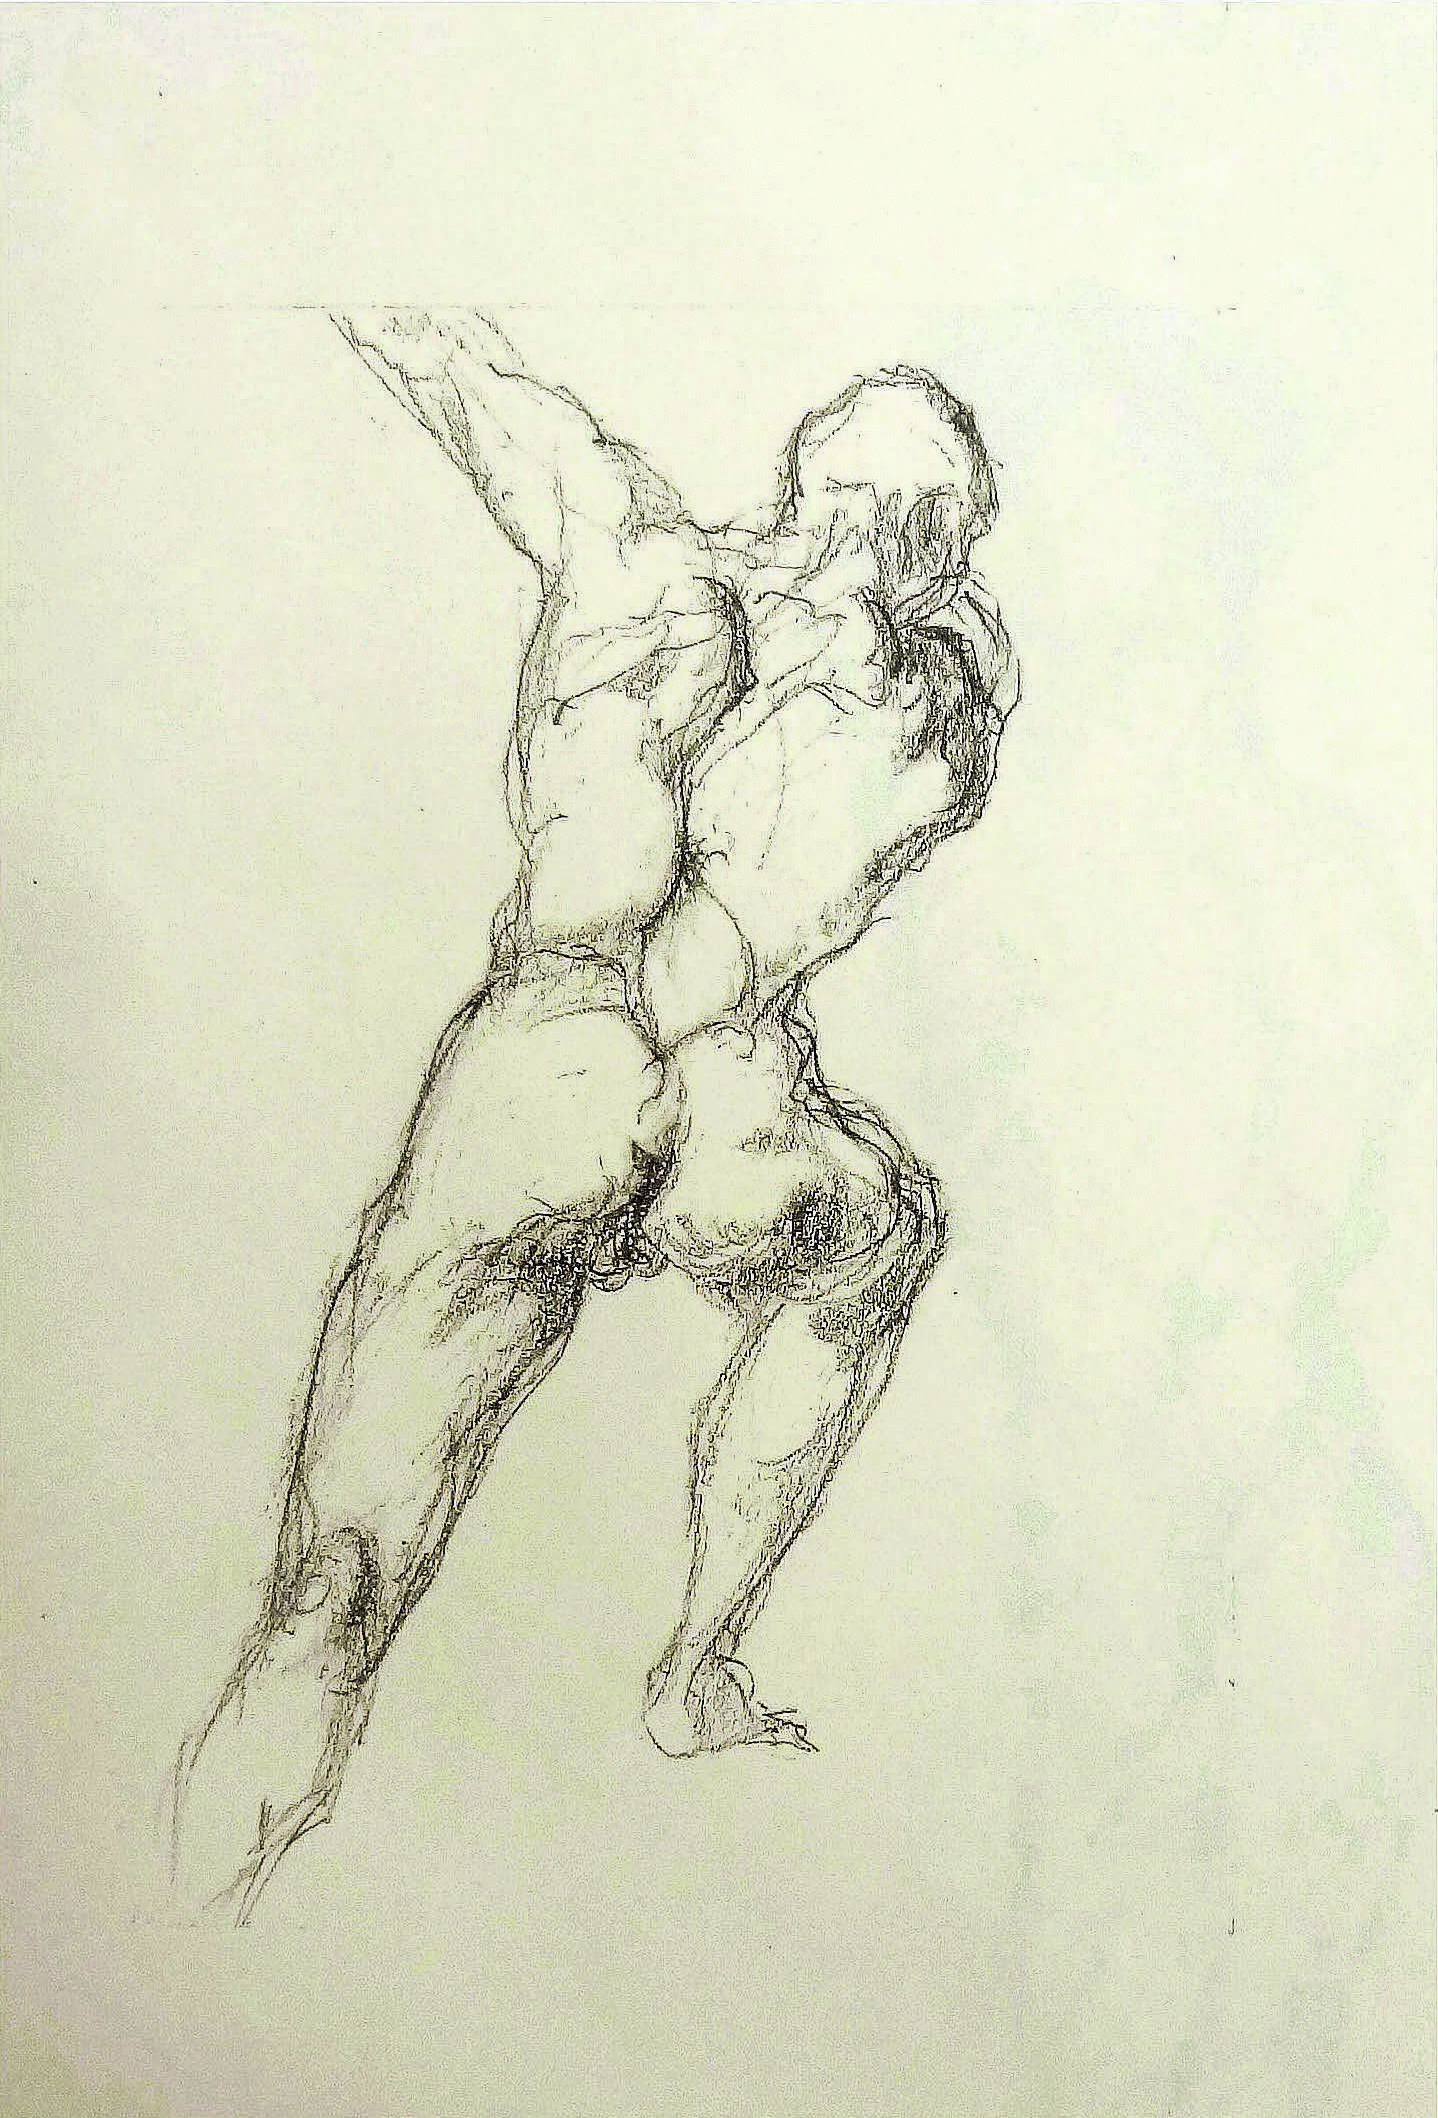 Hellenistic Adoration of the male body - Study , N/A  Pencil on drawing  17 1/2 × 12 in   Inquire Original